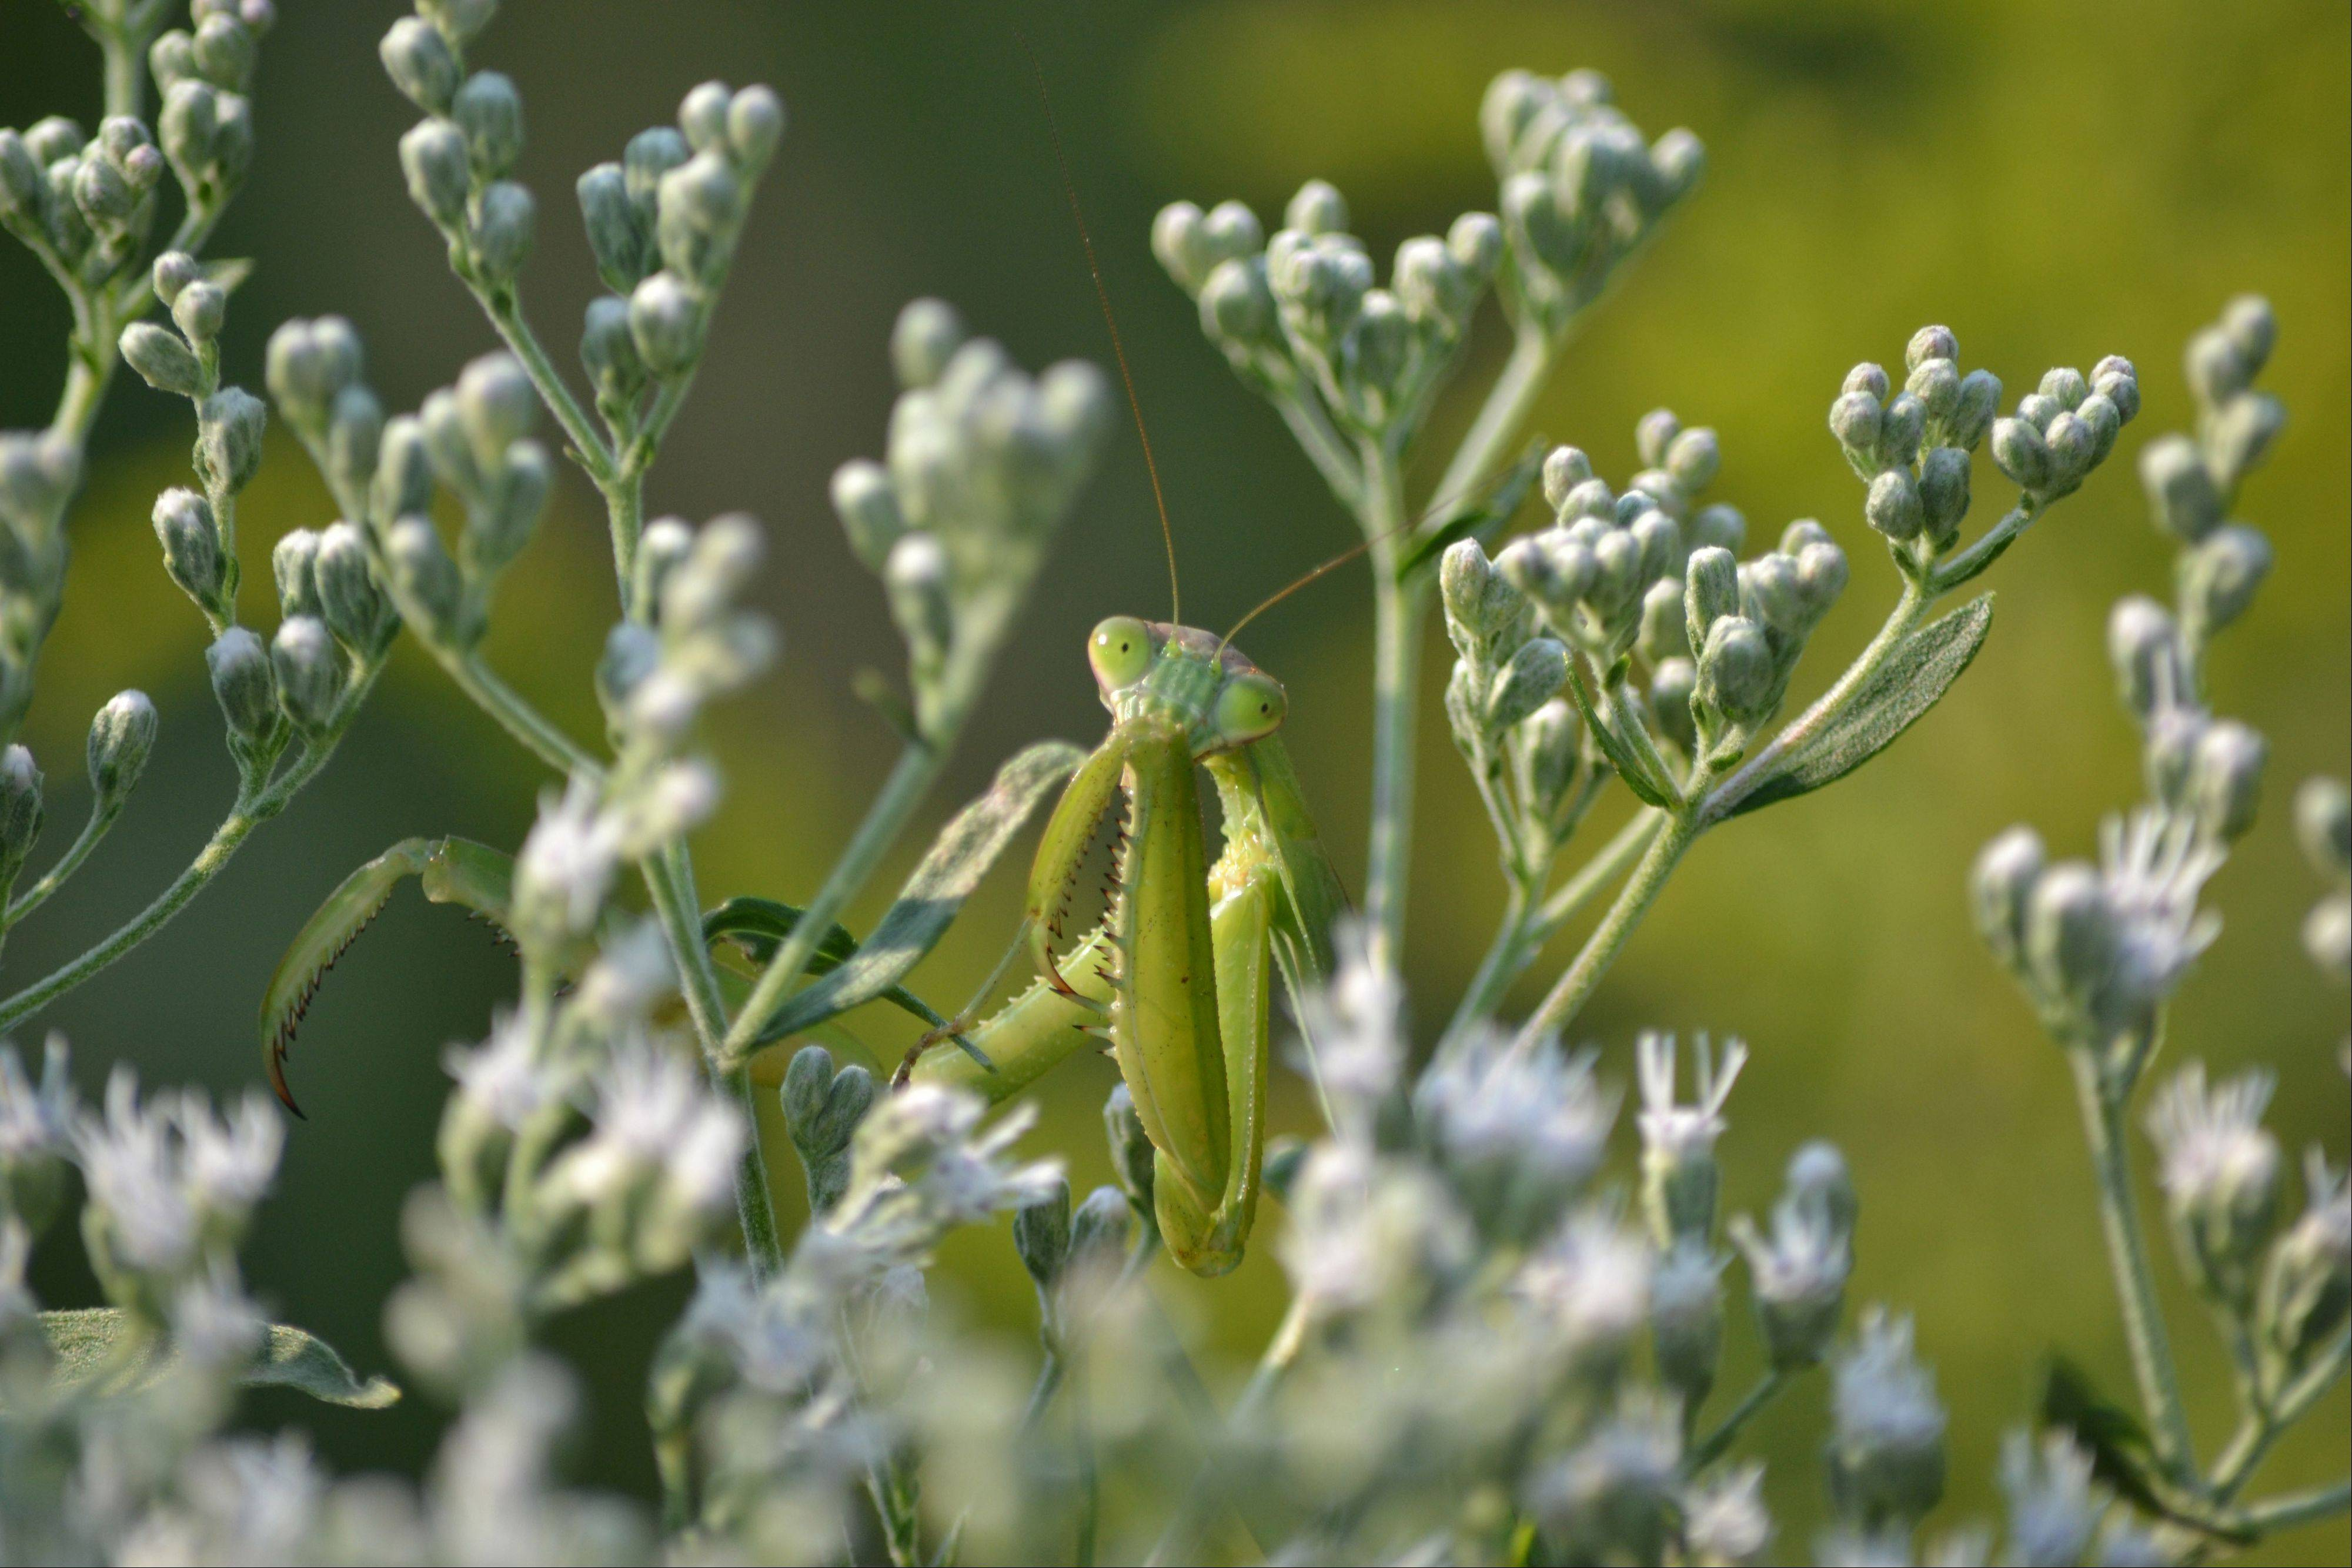 An up close look of a praying mantis in McDowell Grove Forest Preserve in Naperville on September of 2011.